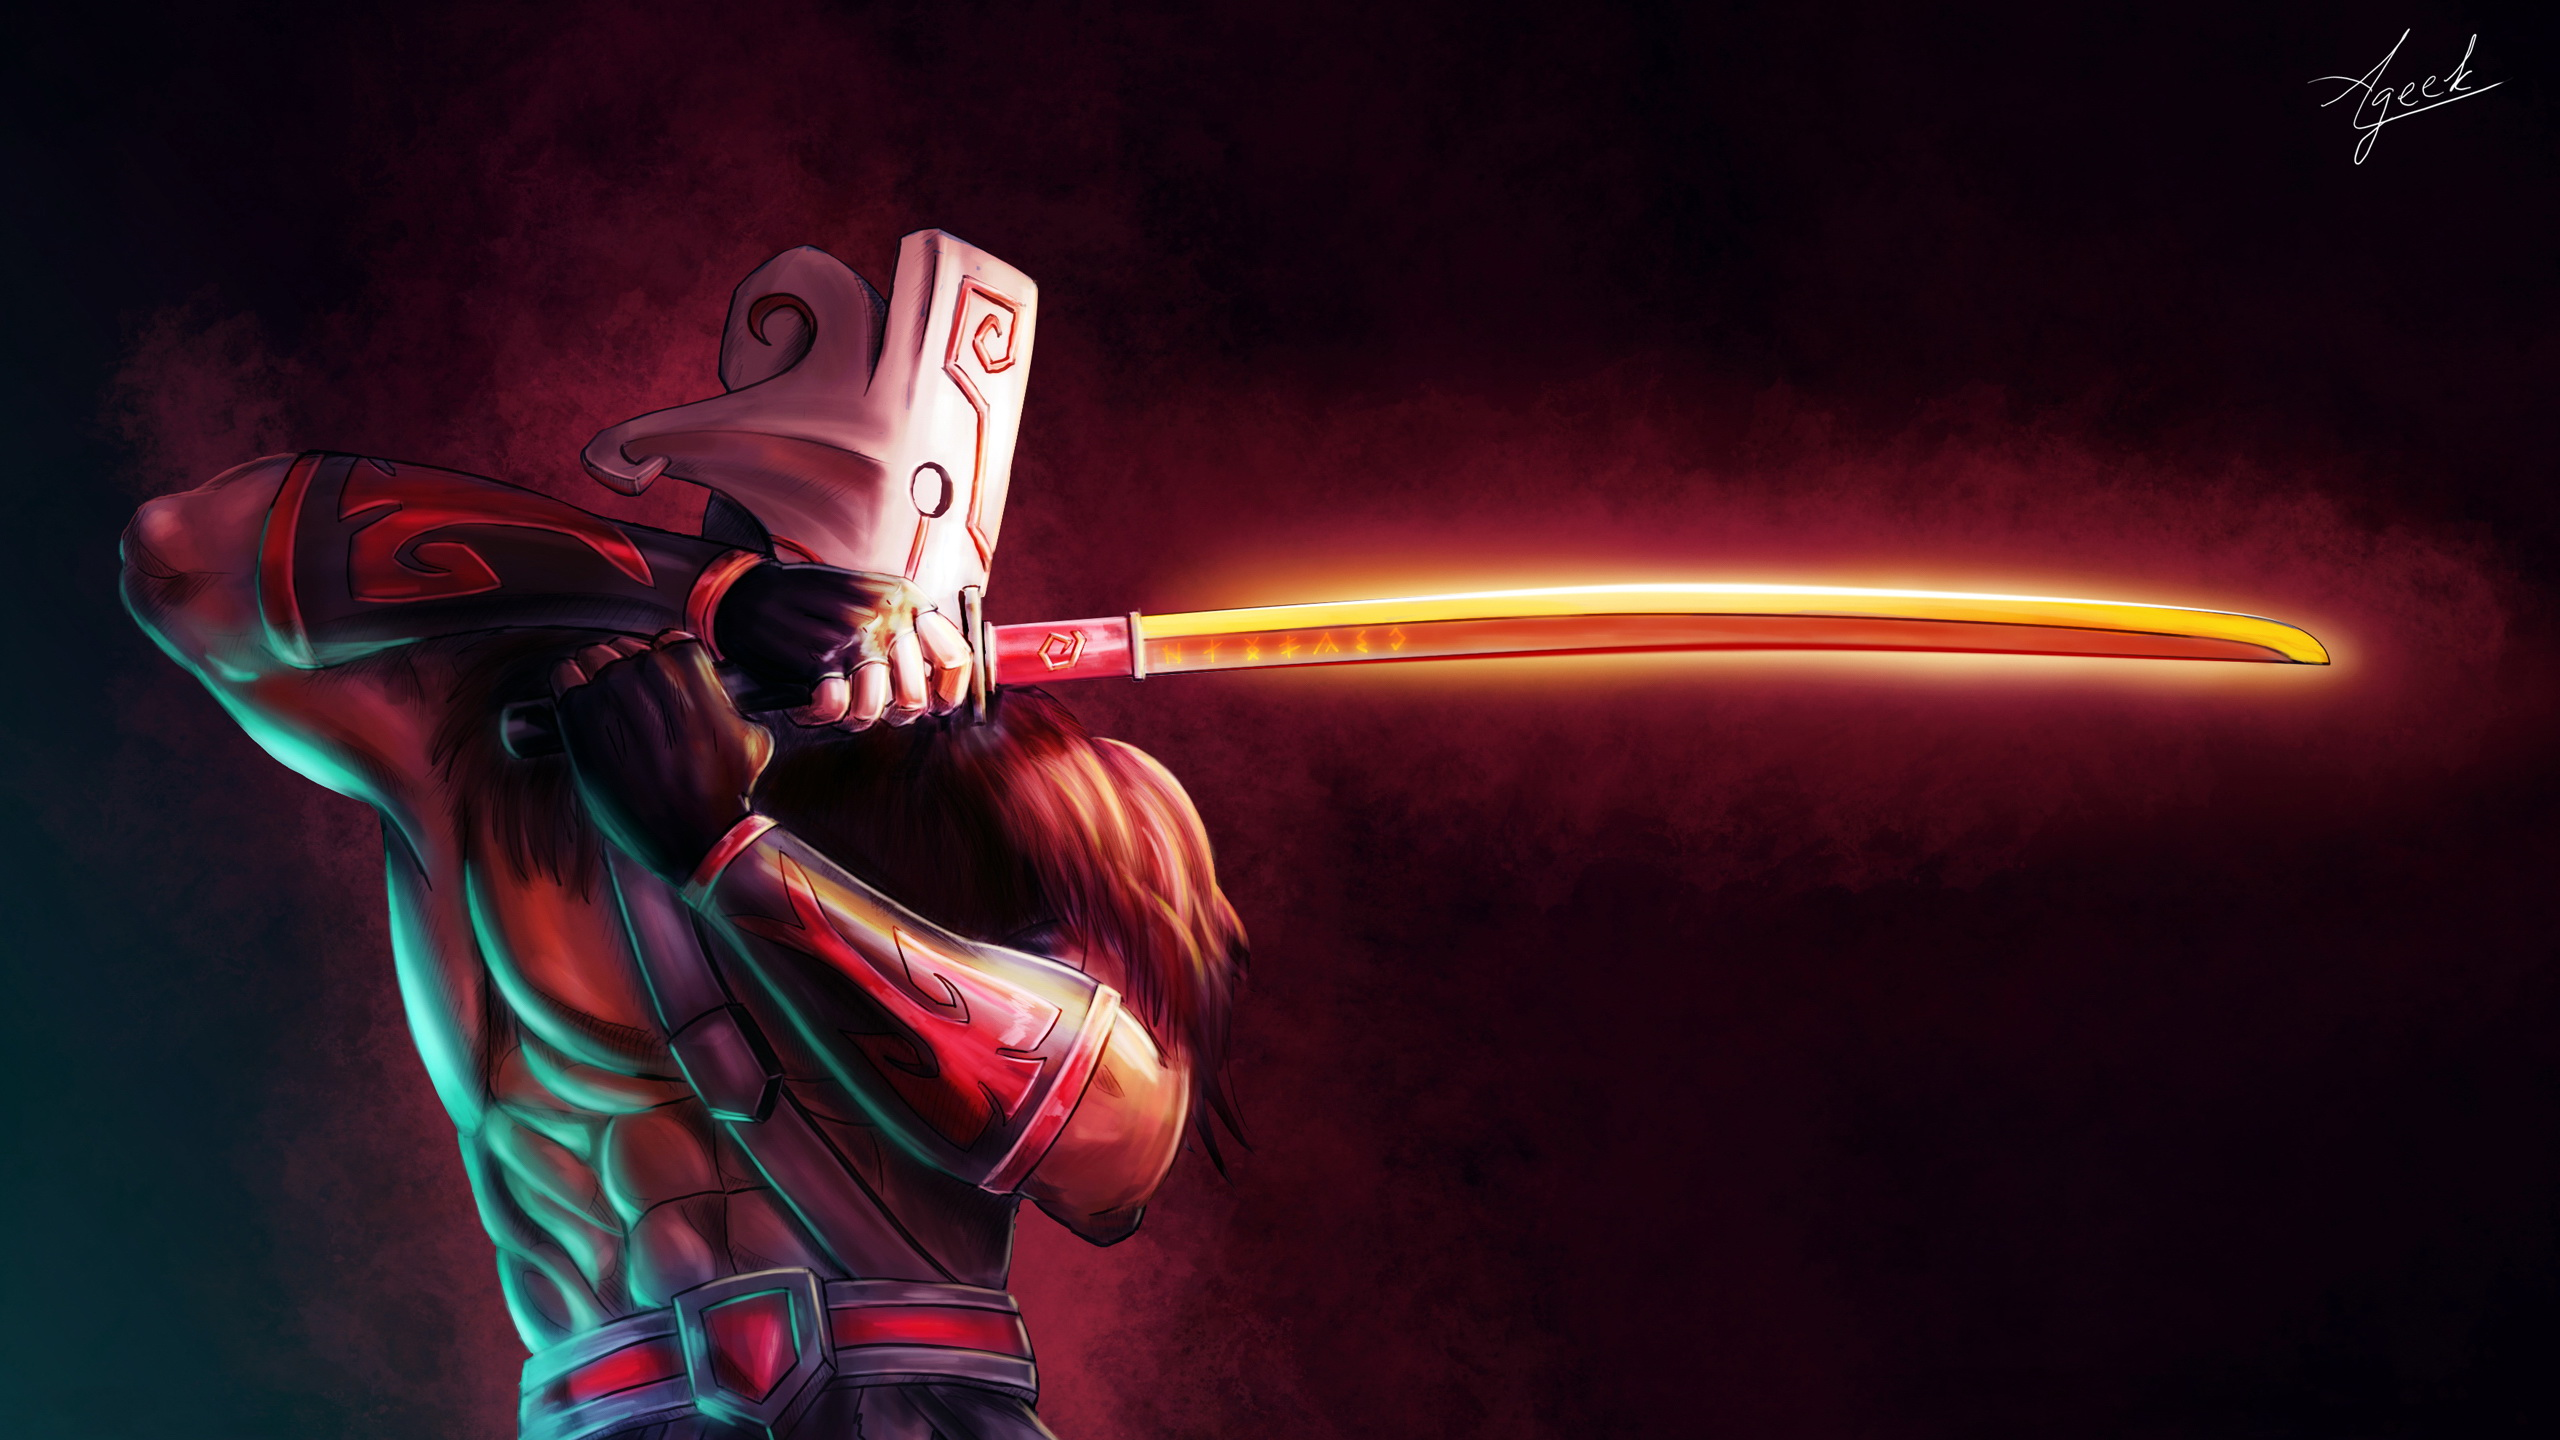 13 Juggernaut (Dota 2) HD Wallpapers